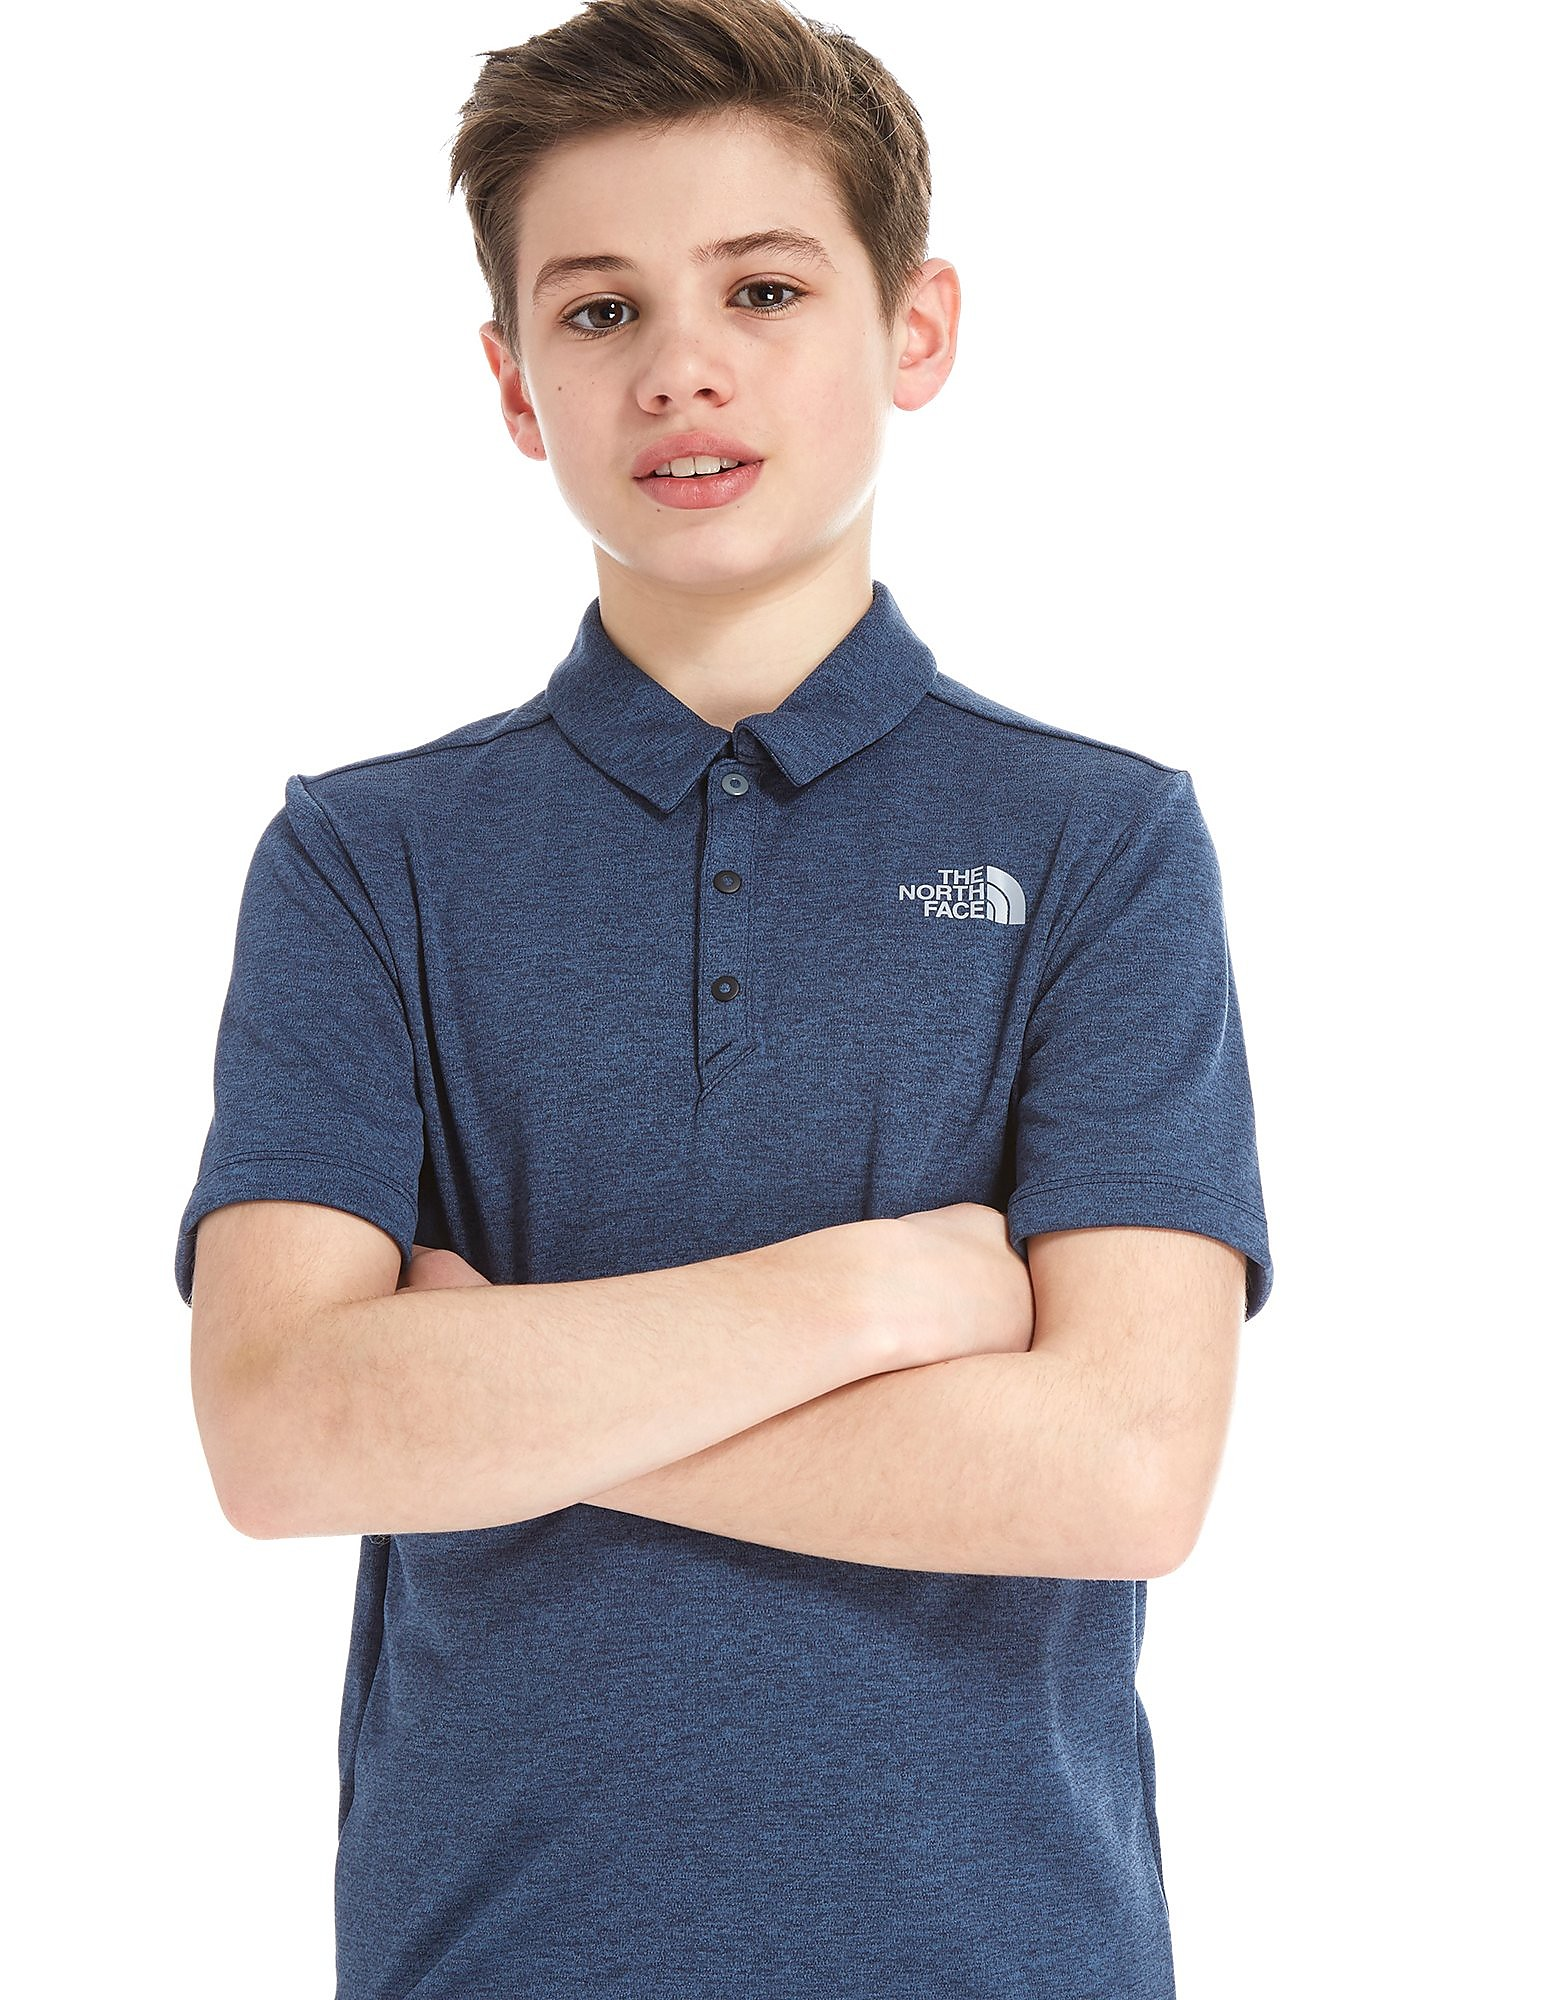 The North Face Poly Polo Shirt Junior